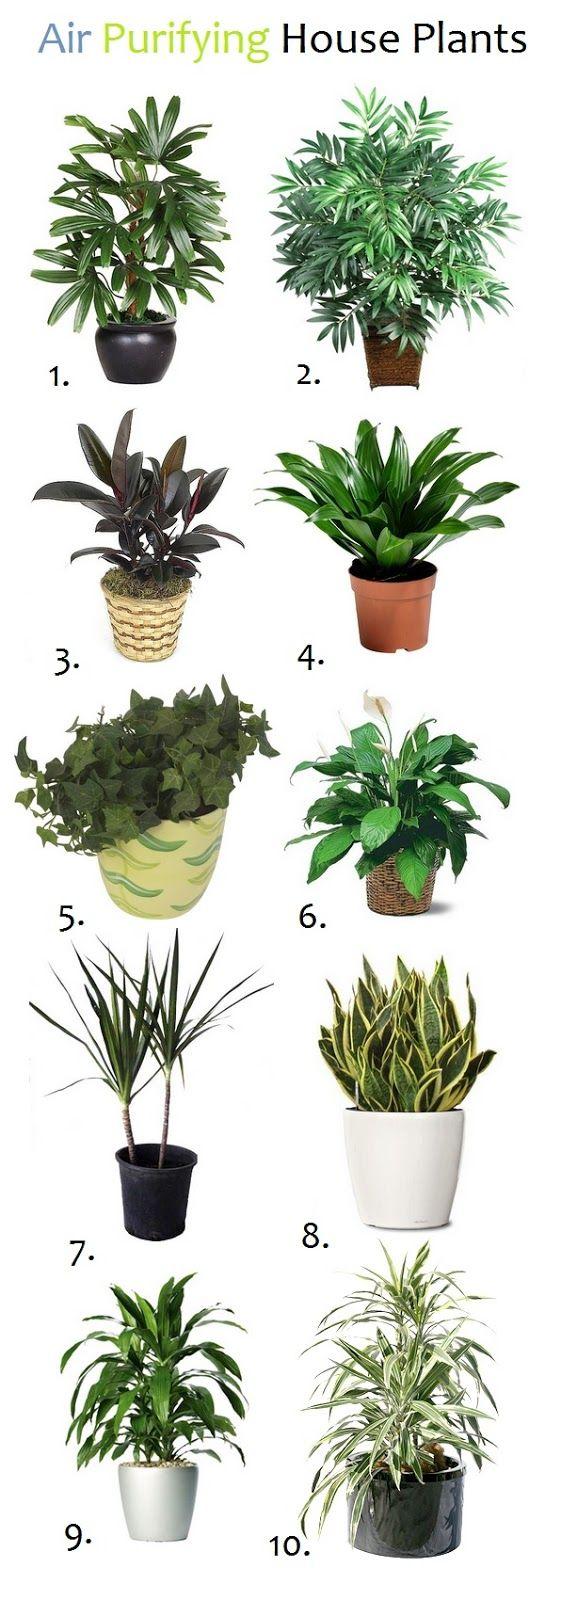 Best Air Purifying Plants Snakes Peace And House